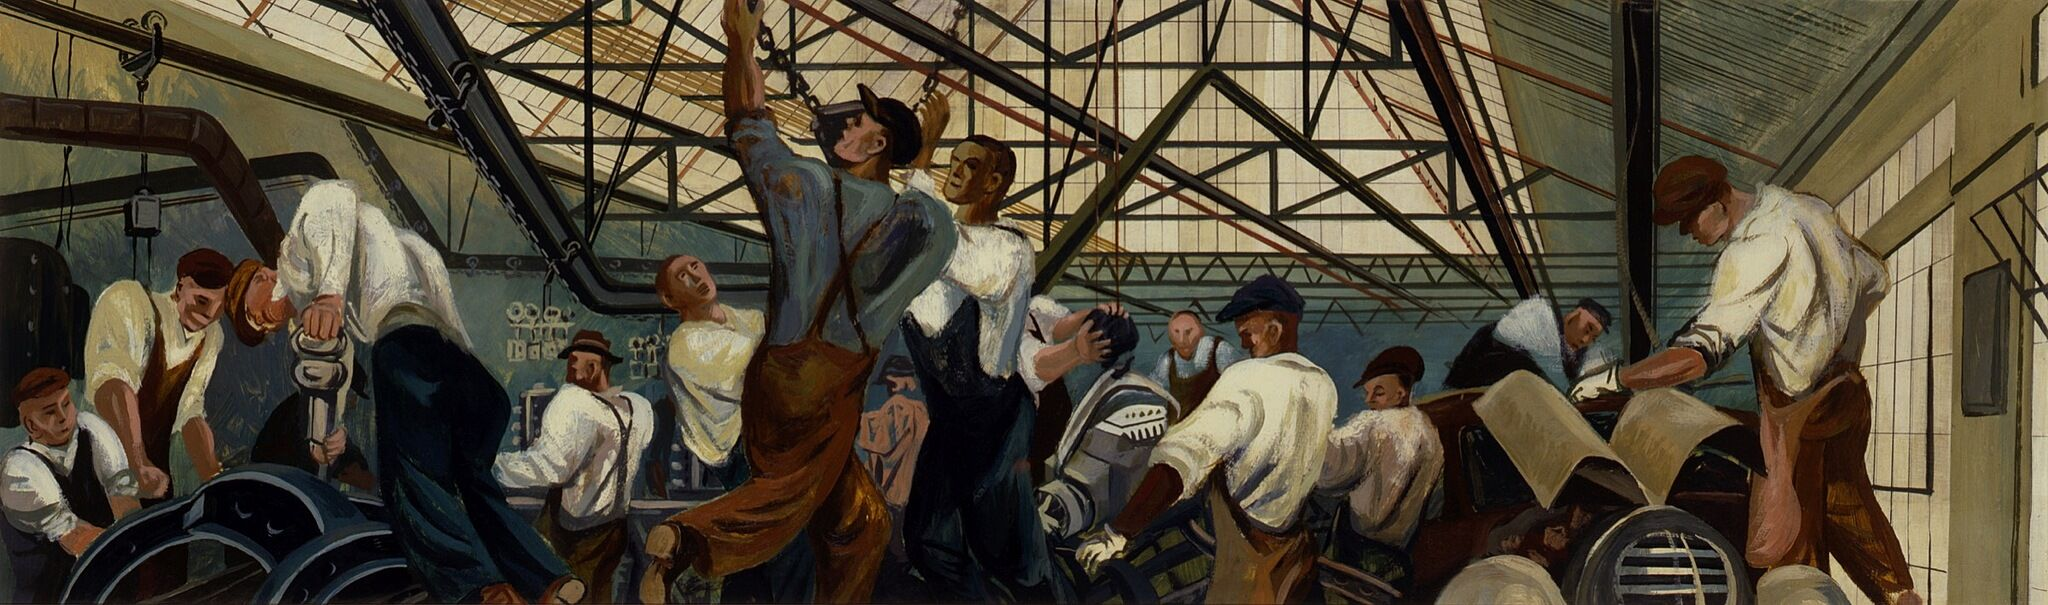 William Gropper, Automobile Industry (mural study, Detroit, Michigan Post Office), 1940–41